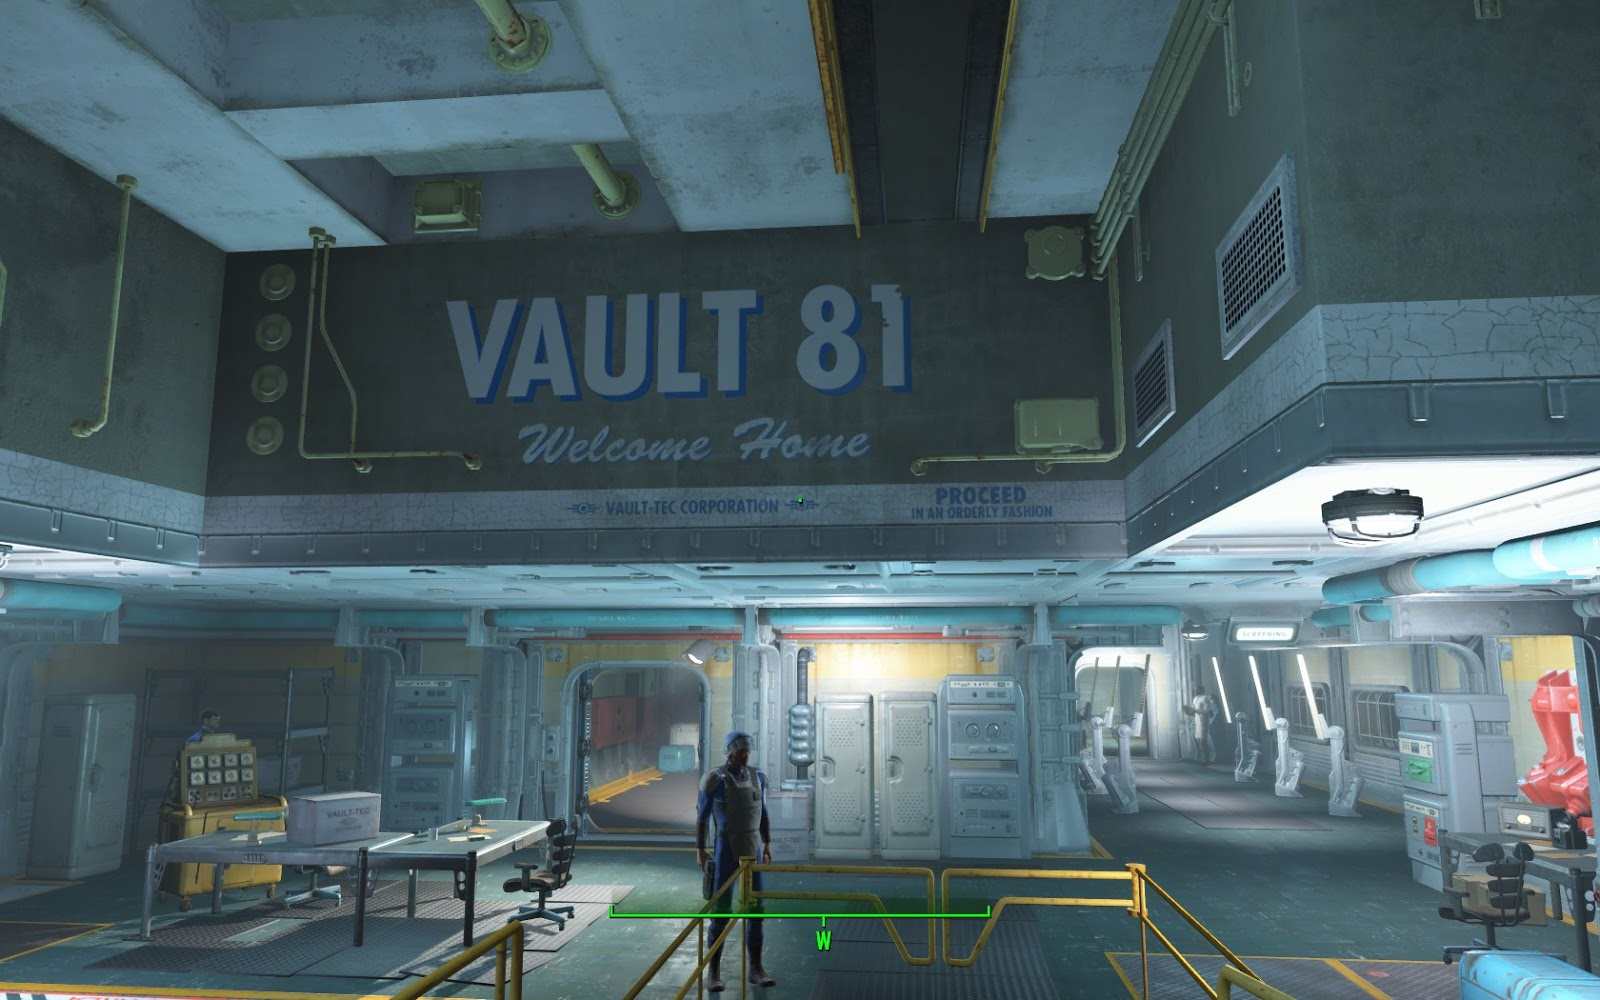 fallout 3 dunwich building with Game  Pleted Fallout 4 on Apple To Act Like Monty Python as well Warrington trainyard furthermore Fallout 4 Mod Download Unlimited Settlement Objects also Fallout Lavinia And Charon 304804828 also Game  pleted Fallout 4.